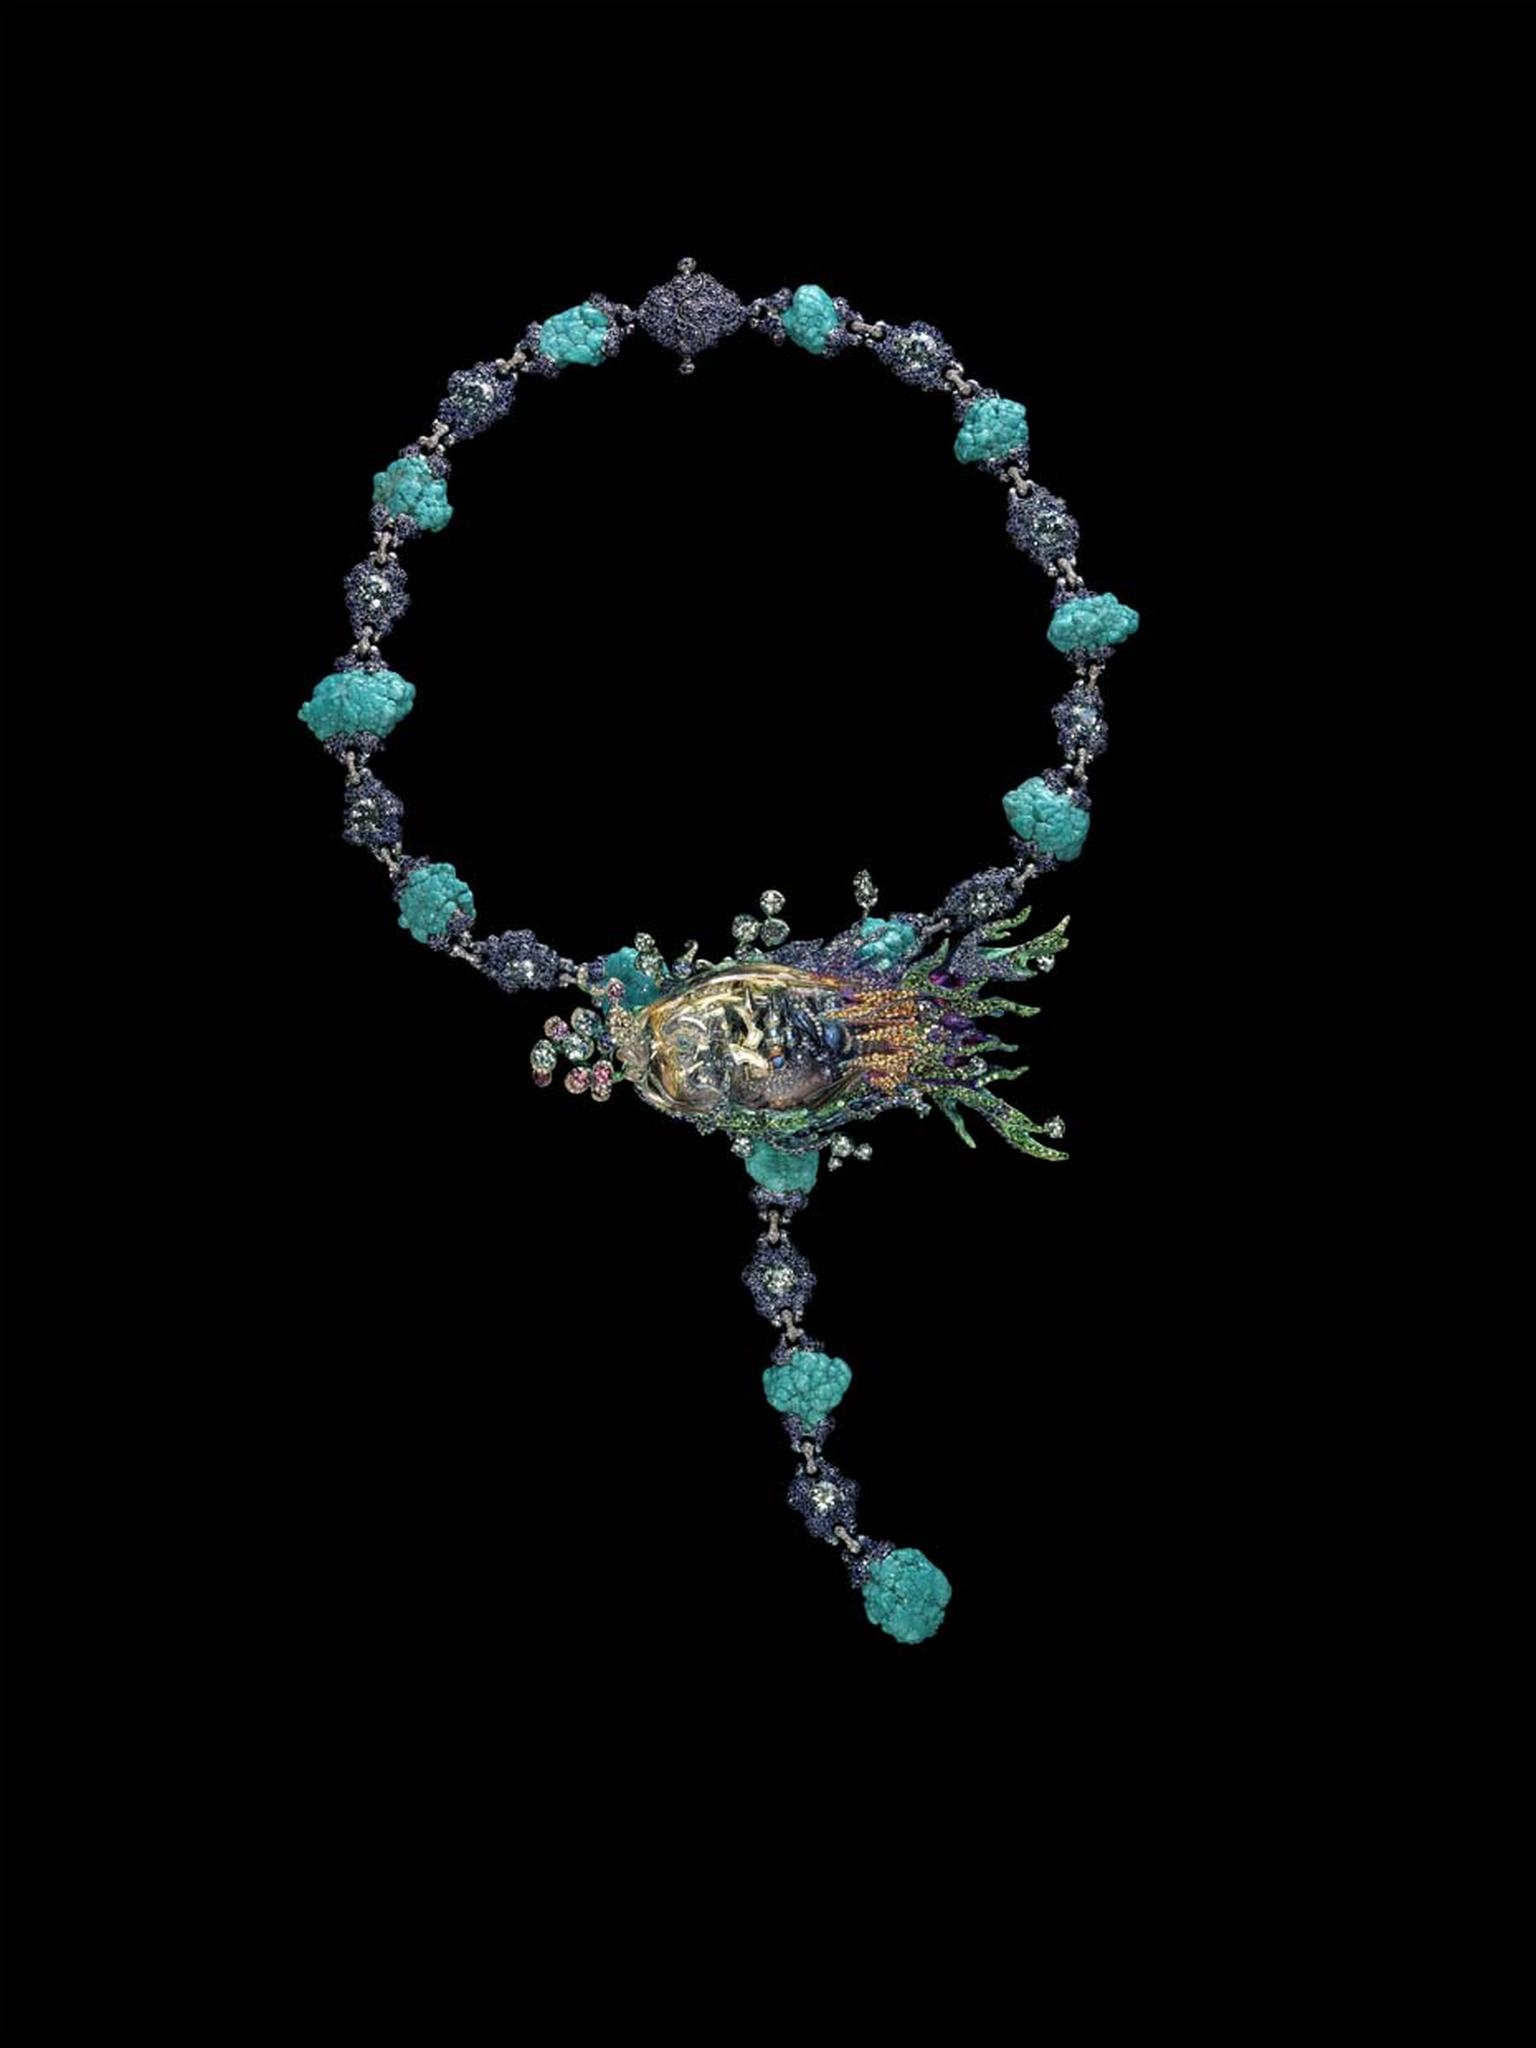 Wallace Chan combines the beauty of a yellow diamond with stunning coloured gemstones including aquamarine, turquoise and sapphire in this beautiful Ebb and Flow design where the fish takes centre stage.